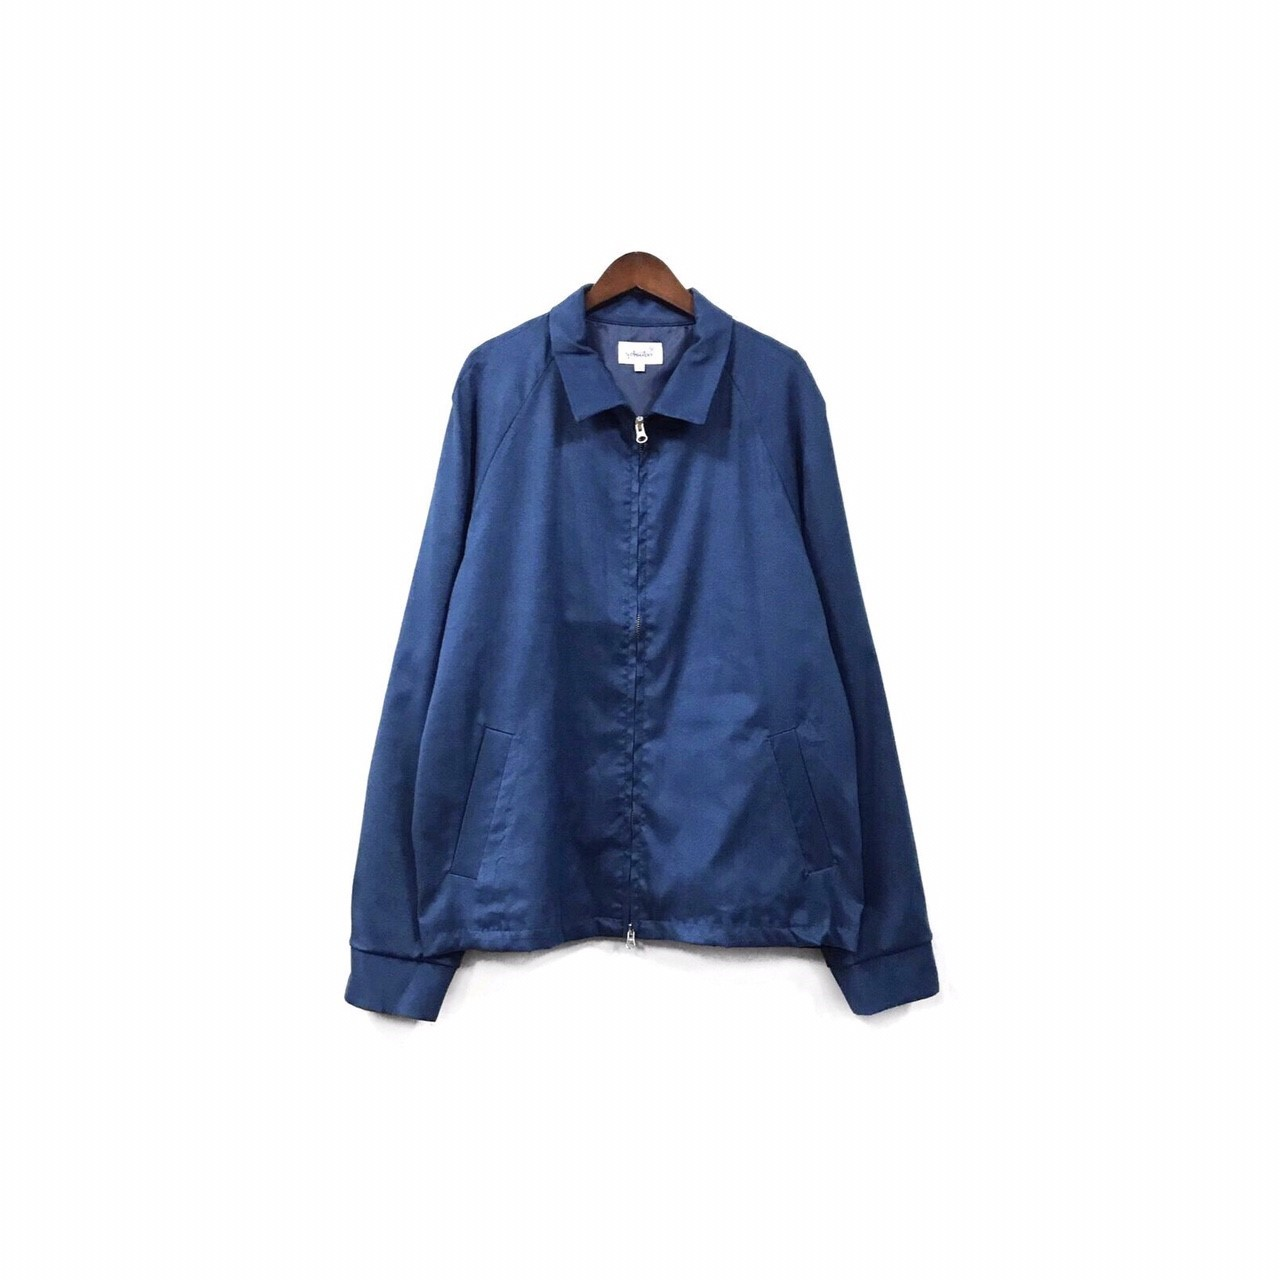 yotsuba - Fake Suede Swingtop Jacket / Blue ¥34000+tax